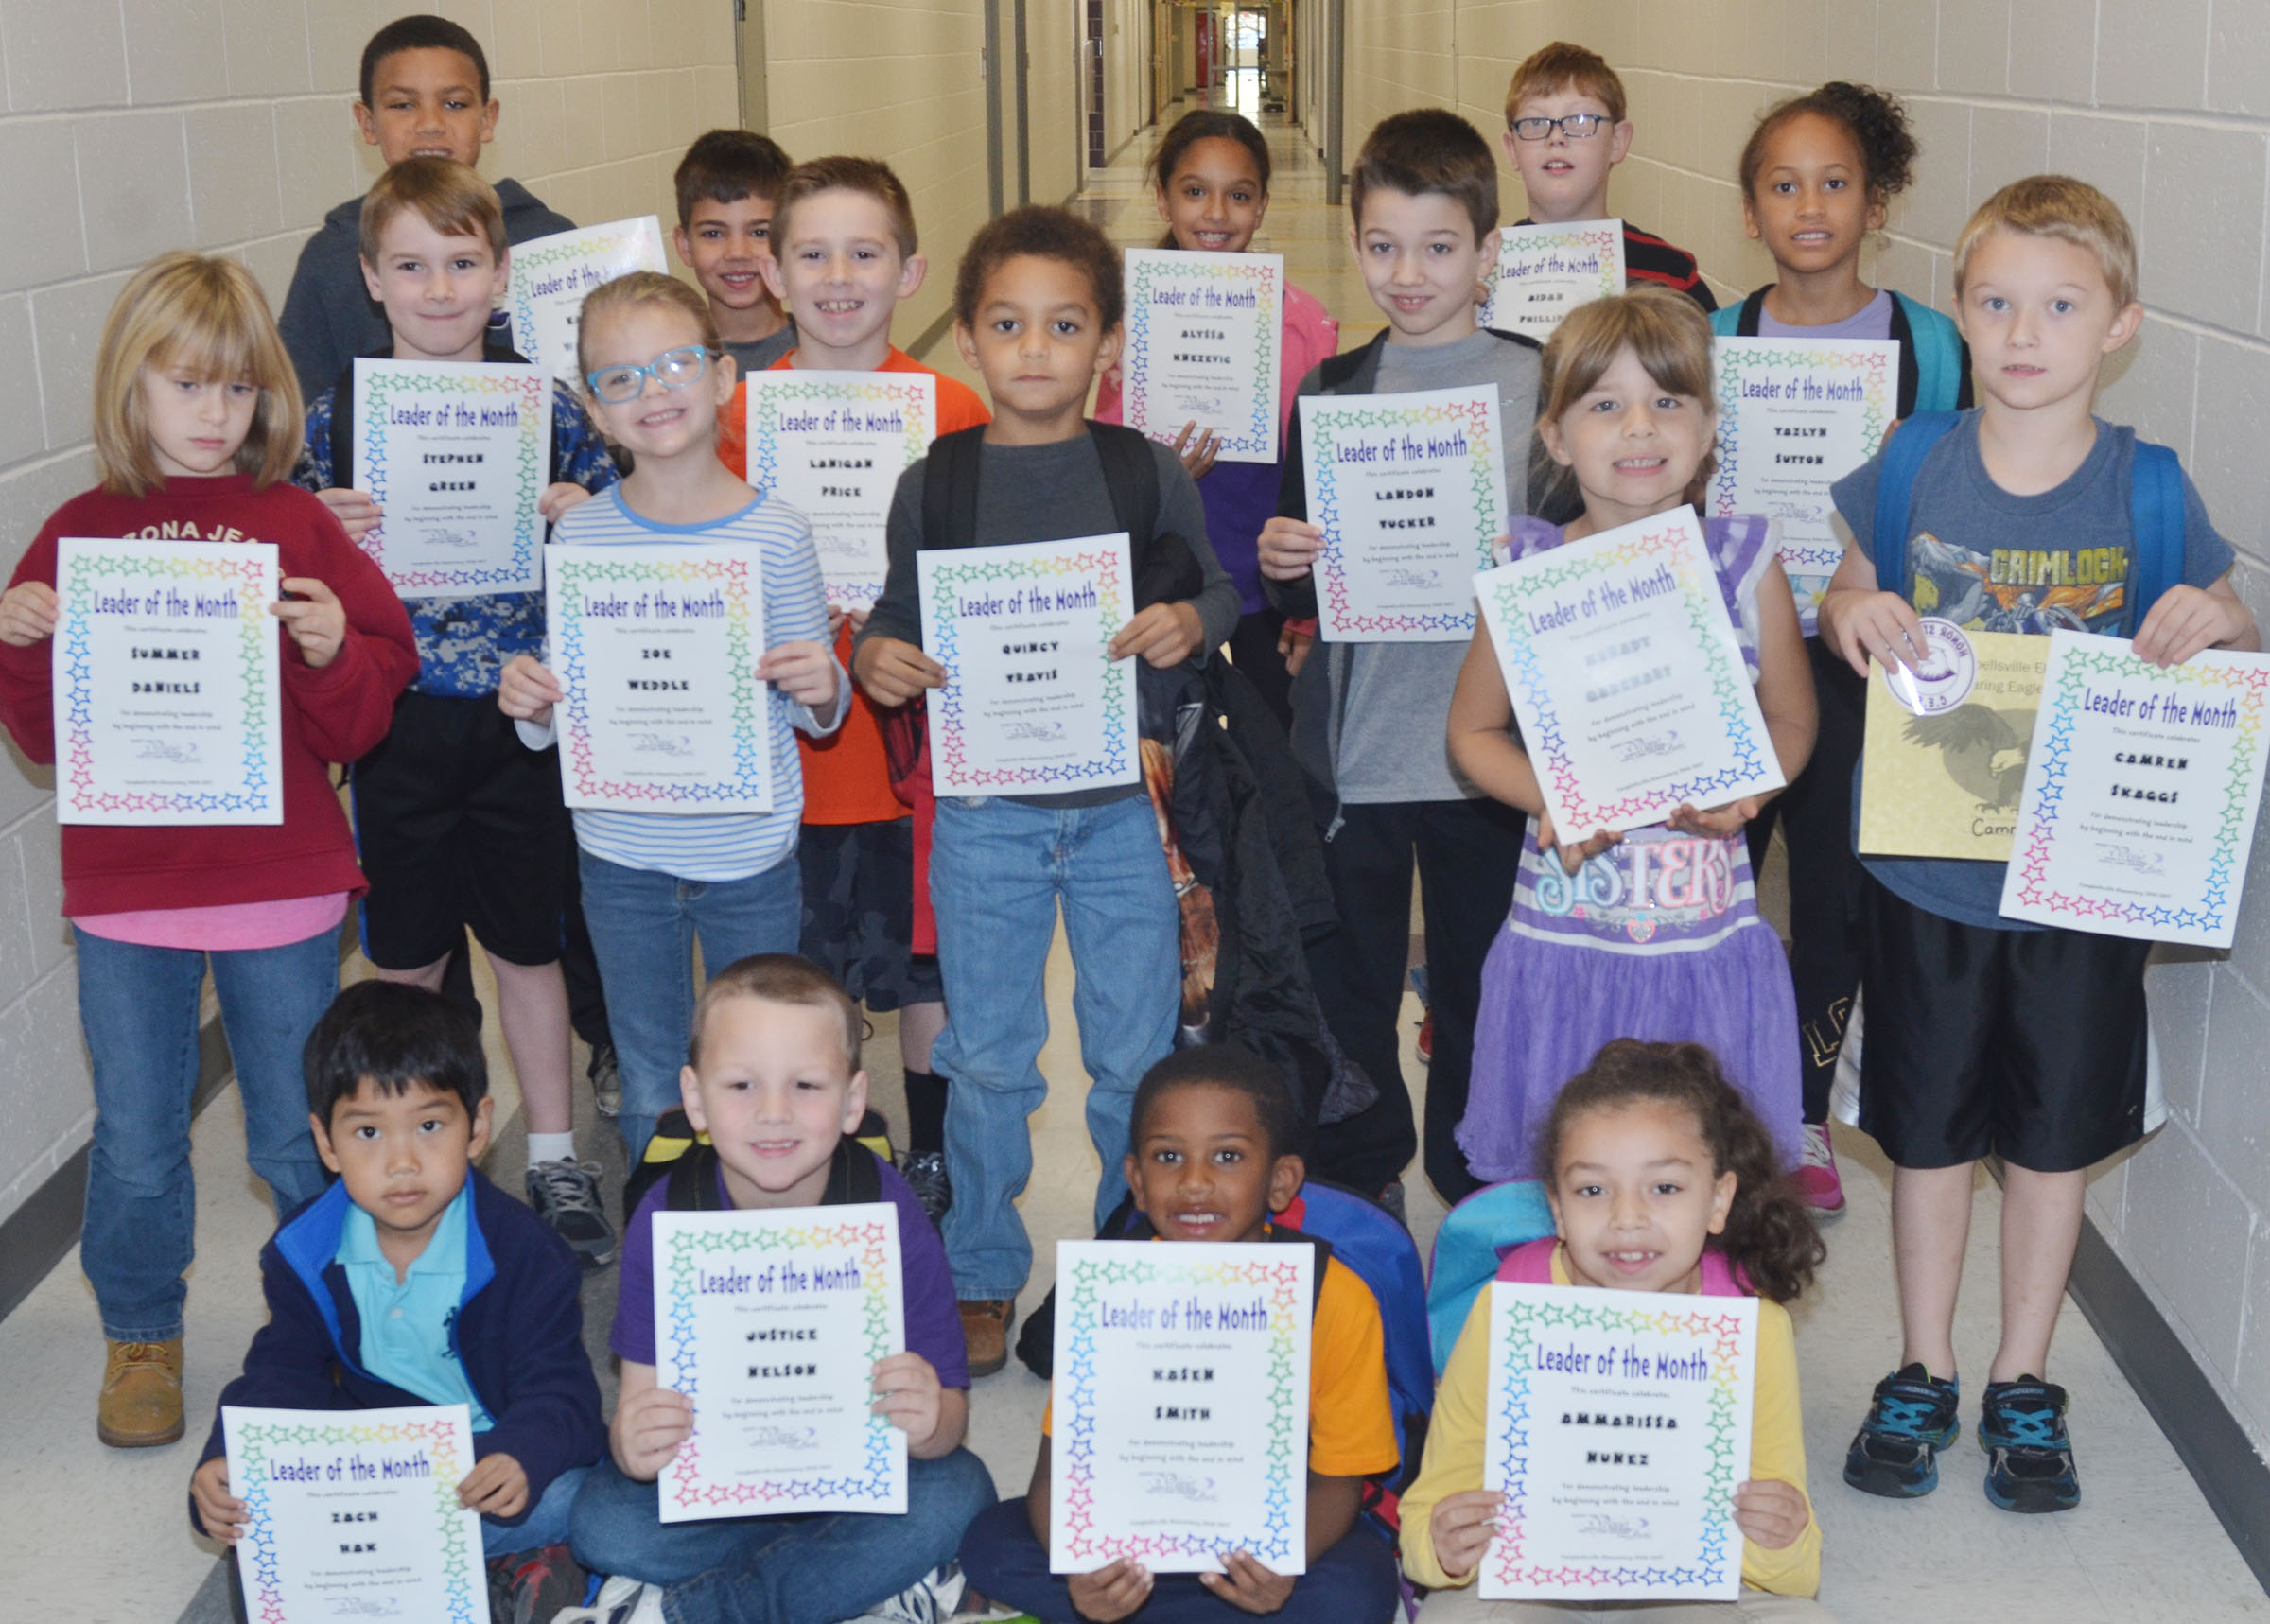 From left, front, are first-grader Zach Hak, kindergarteners Justice Nelson and Kasen Smith and first-grader Ammarissa Nunez. Second row, first-grader Summer Daniels, kindergarteners Zoe Weddle and Quincy Travis, first-grader Kenady Gabehart and second-grader Camren Skaggs. Third row, second-graders Stephen Green and Lanigan Price, third-grader Landon Tucker and second-grader Yazlyn Sutton. Back, third-graders Christian Hart, Easton Williams, Alyssa Knexevic and Aidan Phillips. Absent from the photo are first-grader Nadia Taylor and second-grader Evelyn Stancill.